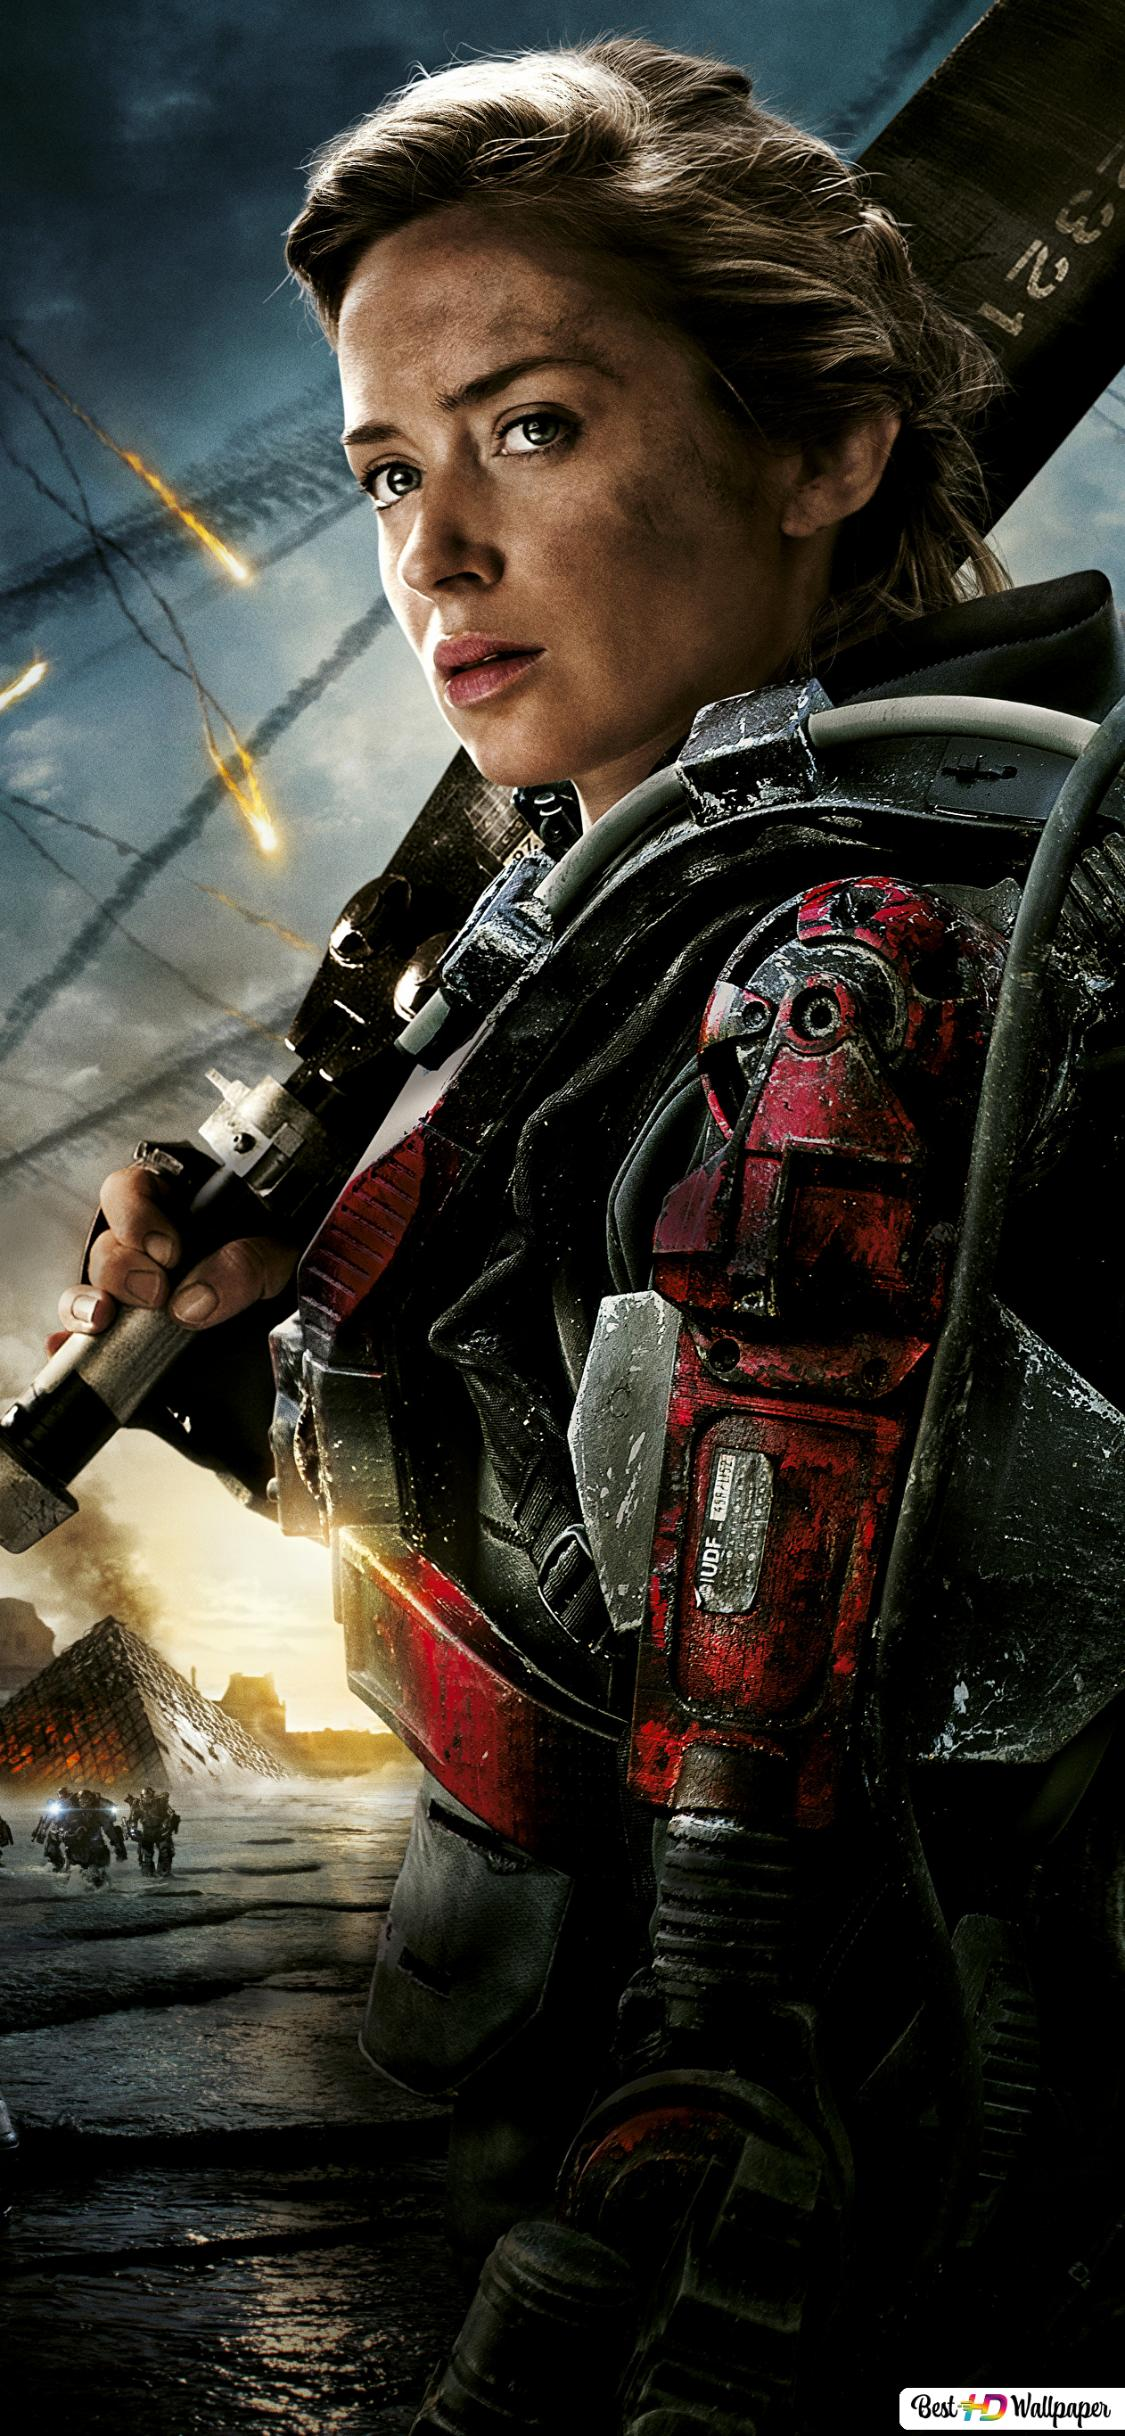 Edge Of Tomorrow Emily Blunt As Rita Vrataski Hd Wallpaper Download